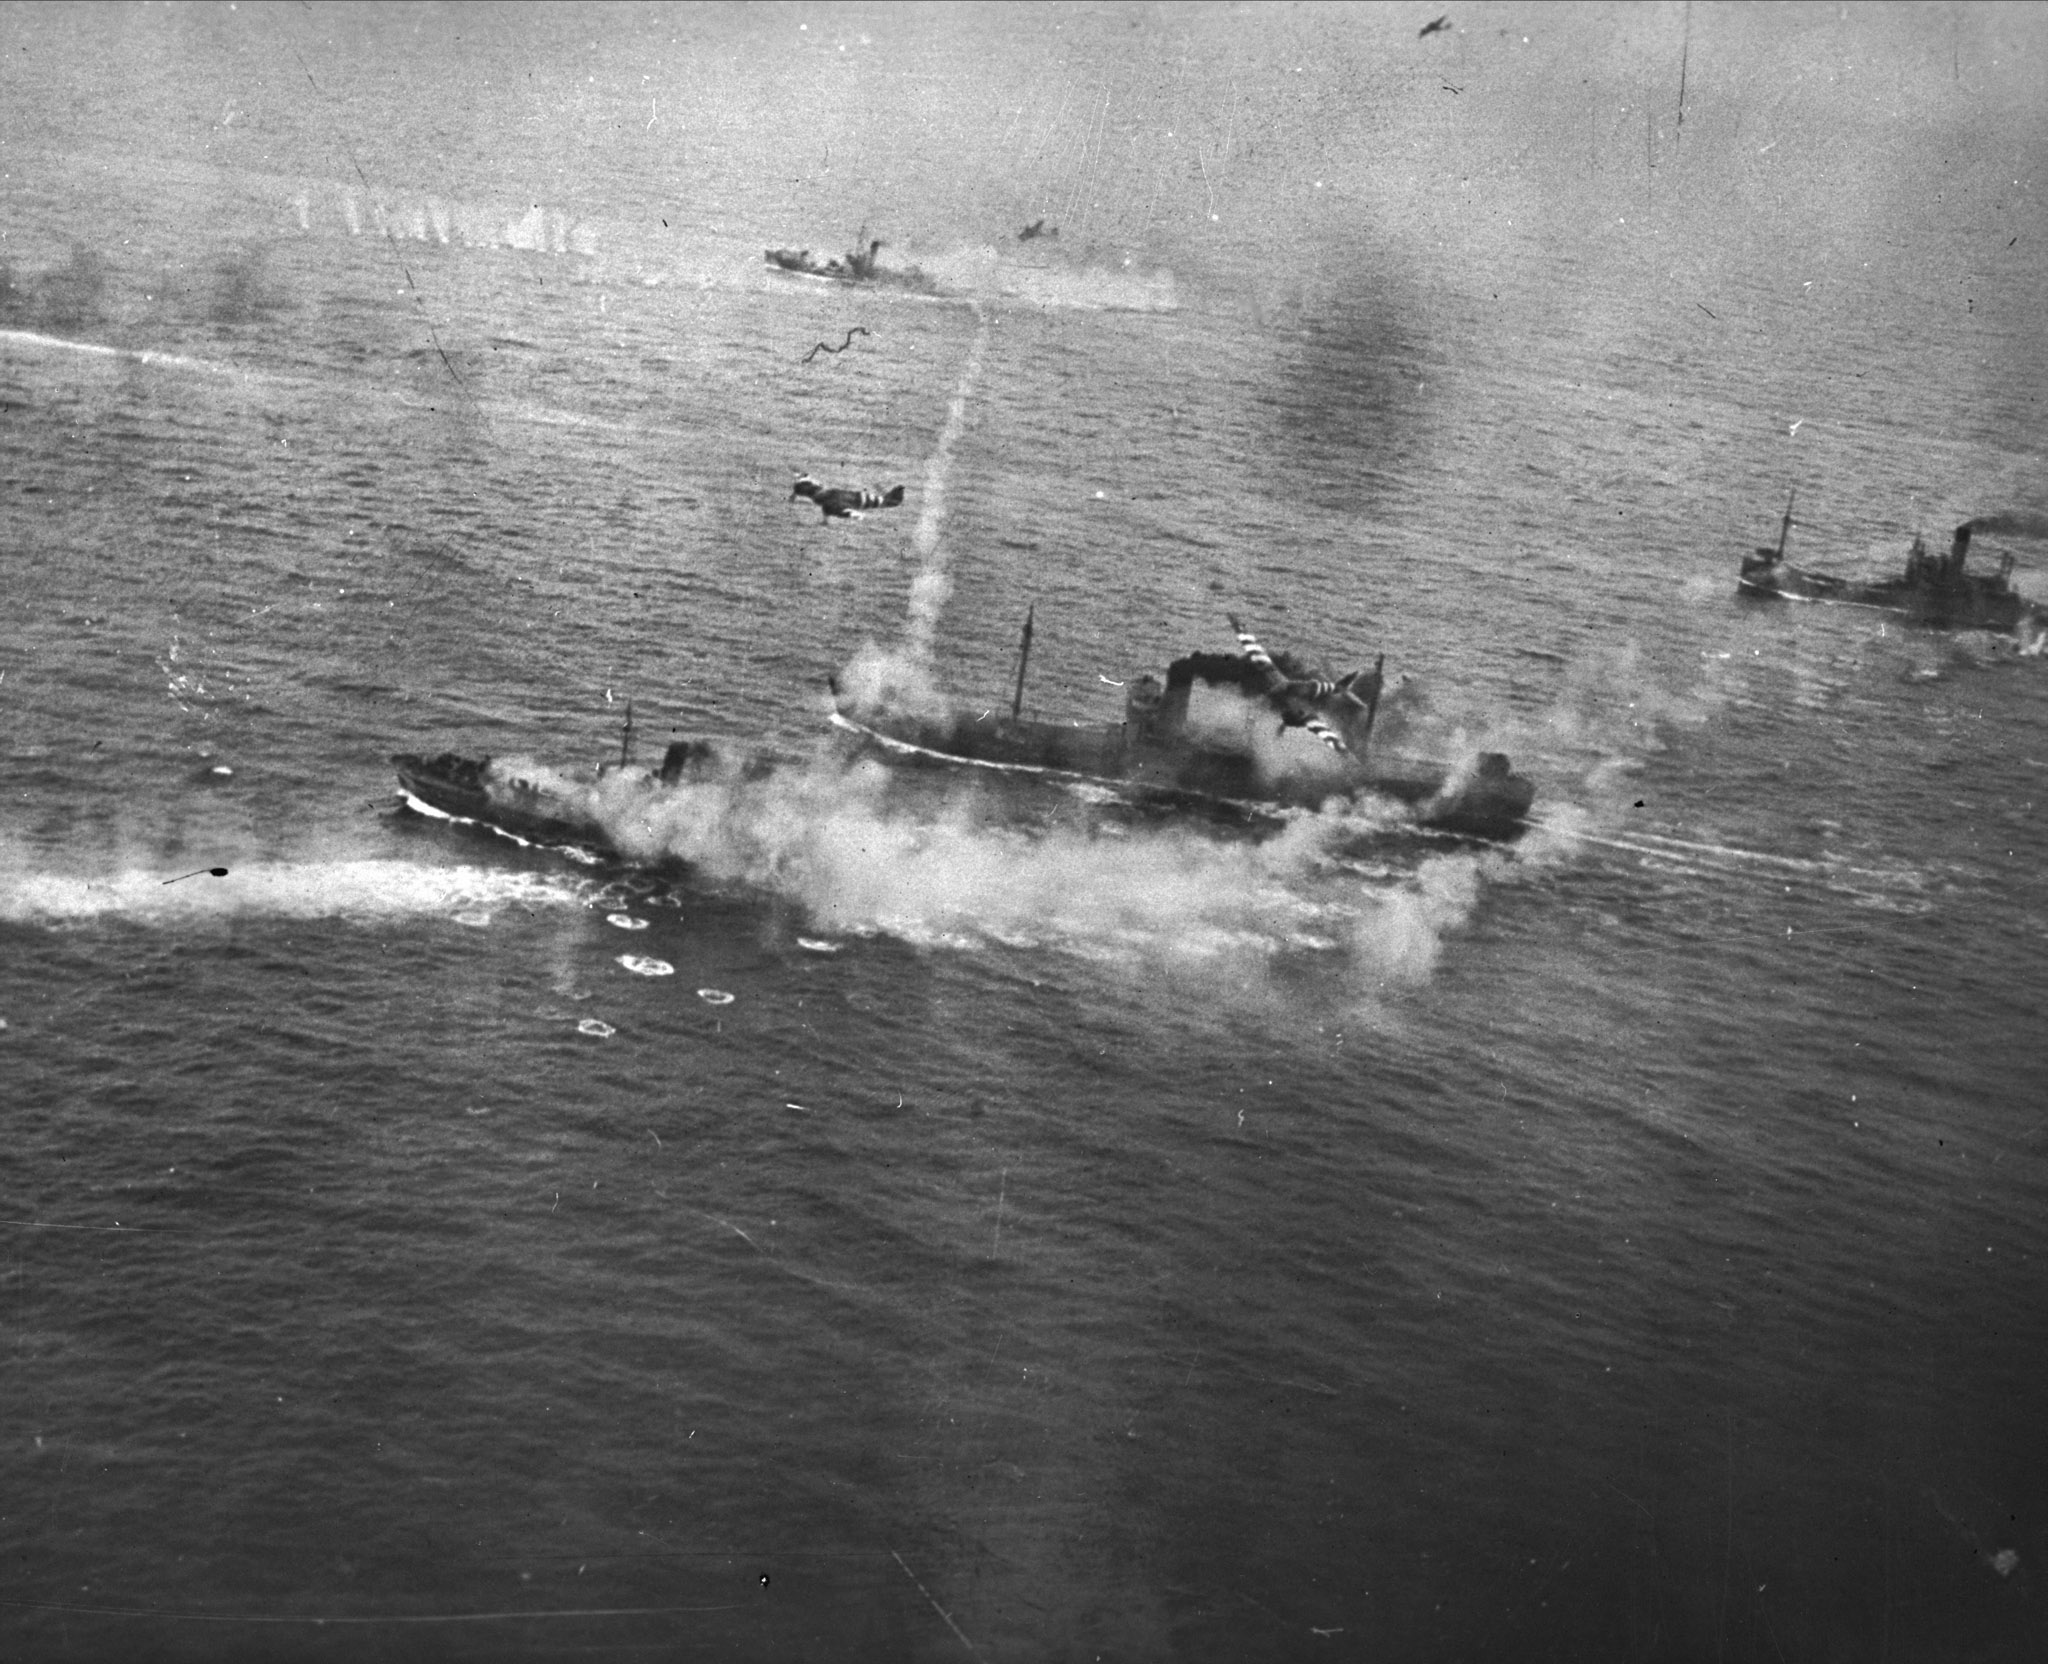 British Beaufighters cripple an enemy convoy off the south coast of Norway. Flying through cloud down to sea level, the Beaufighters from Coastal Command completely surprised the German convoy. In this photo, three armed trawlers and a motor vessel are on fire after a cannon attack by the Beaufighters, which attacked from mast height. PHOTO: DND Archives, PL-61355